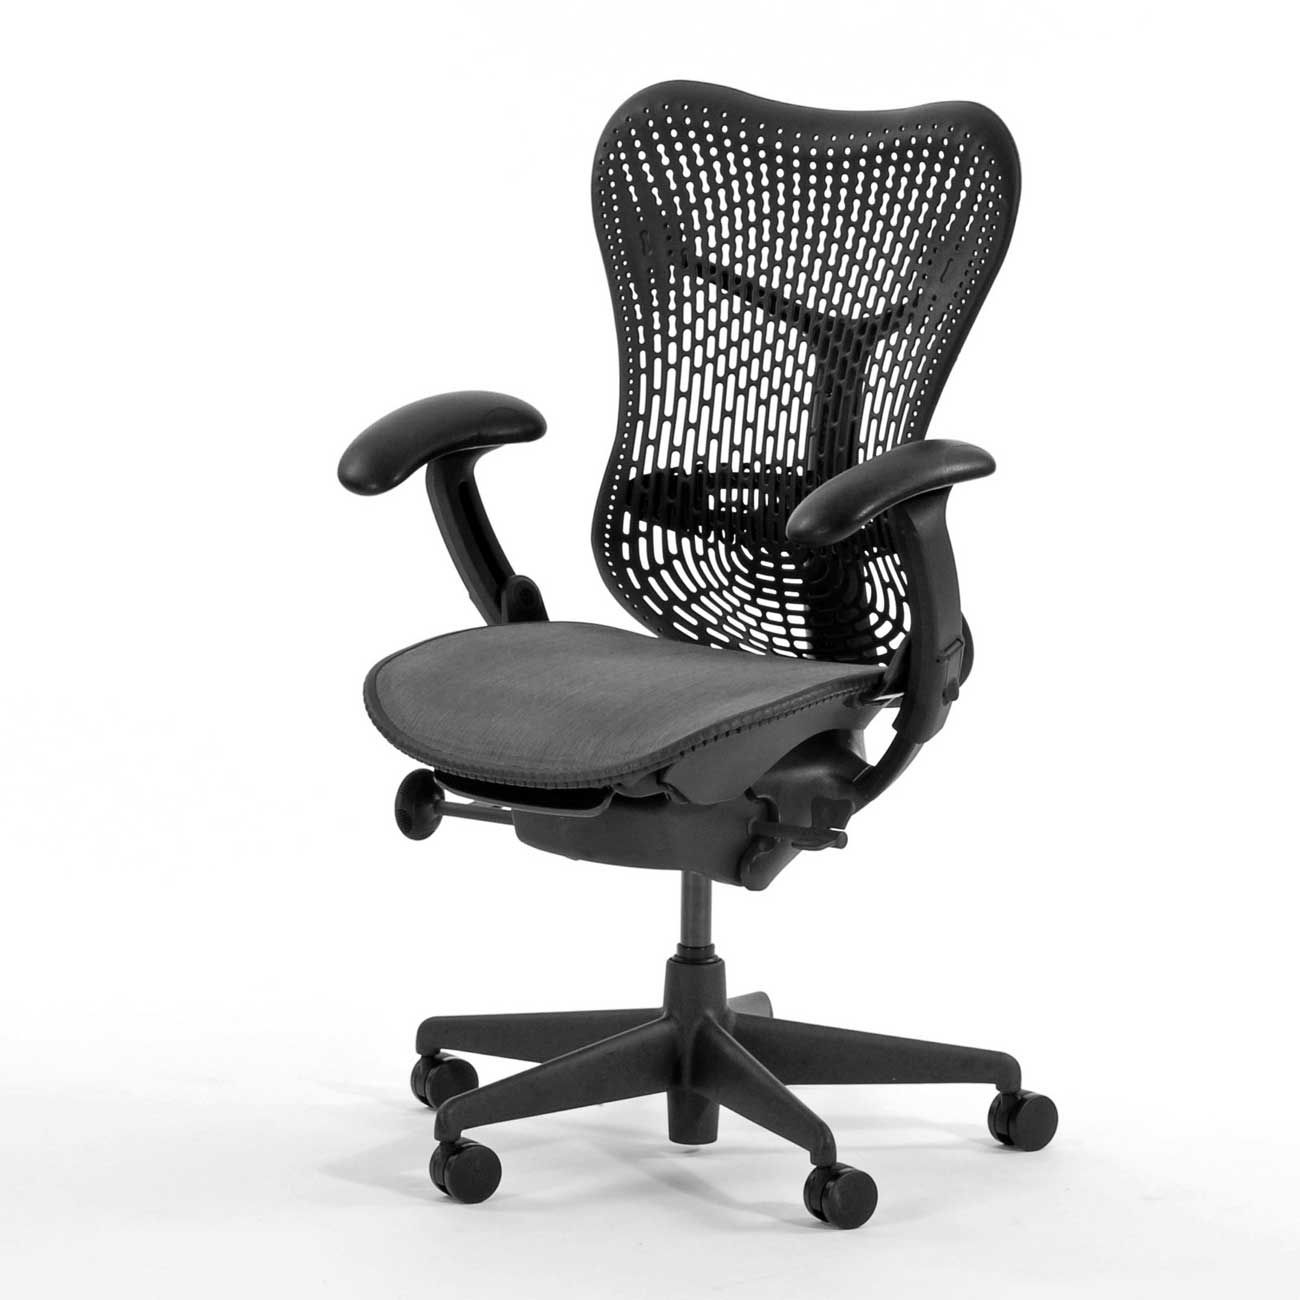 Schon Fresco Of Herman Miller Aeron Chair Parts Give Awesome Look For Office With  Modern Nuance